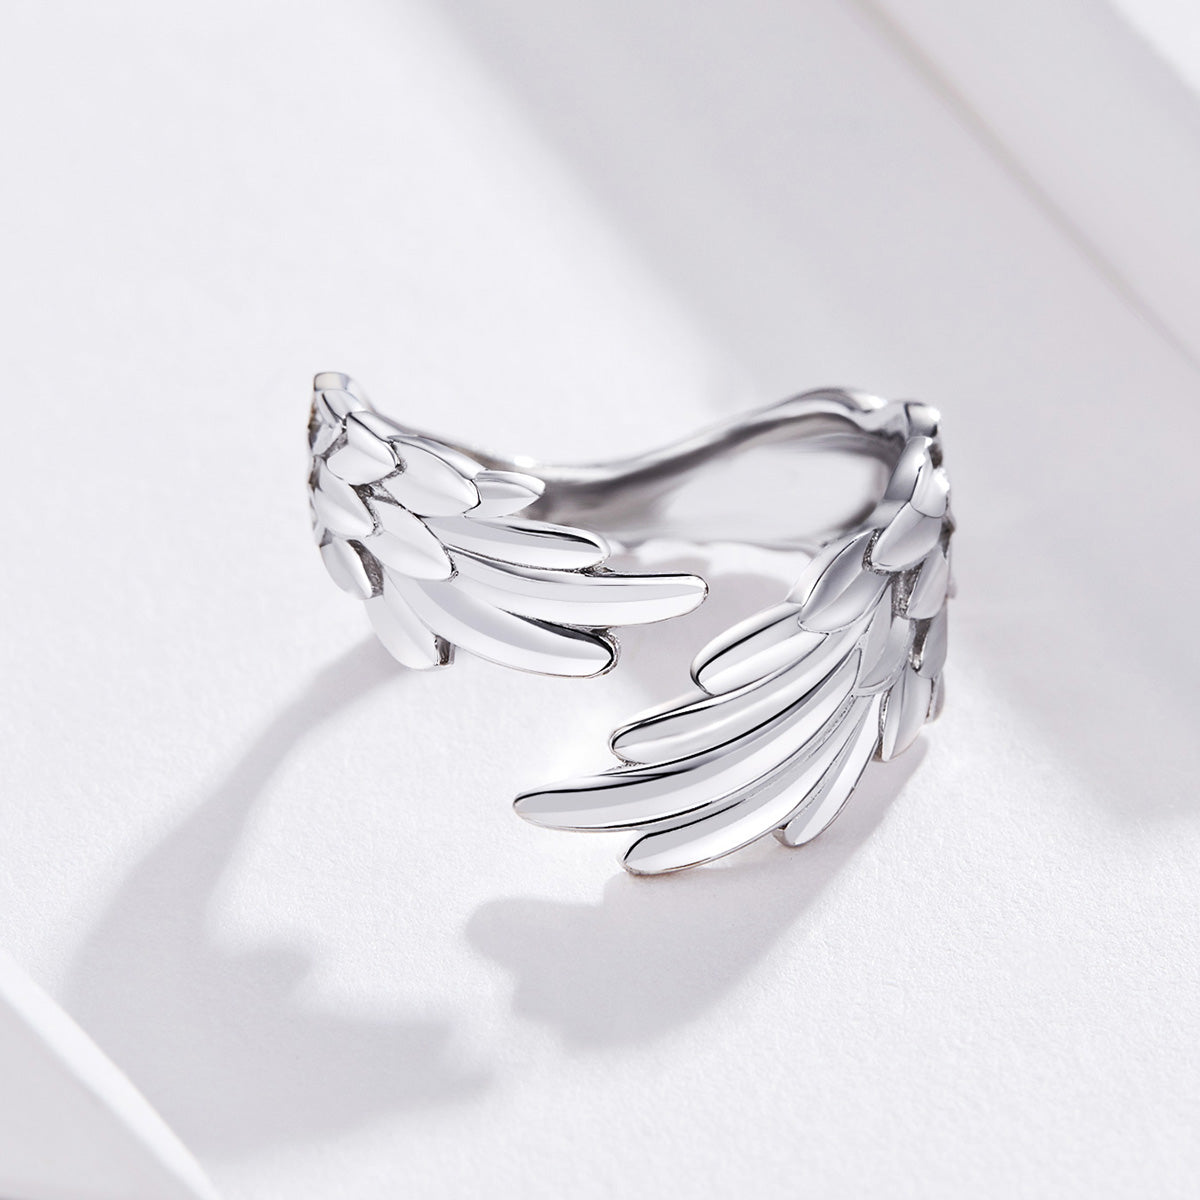 S925 Sterling Silver Wing Ring White Gold Plated Ring